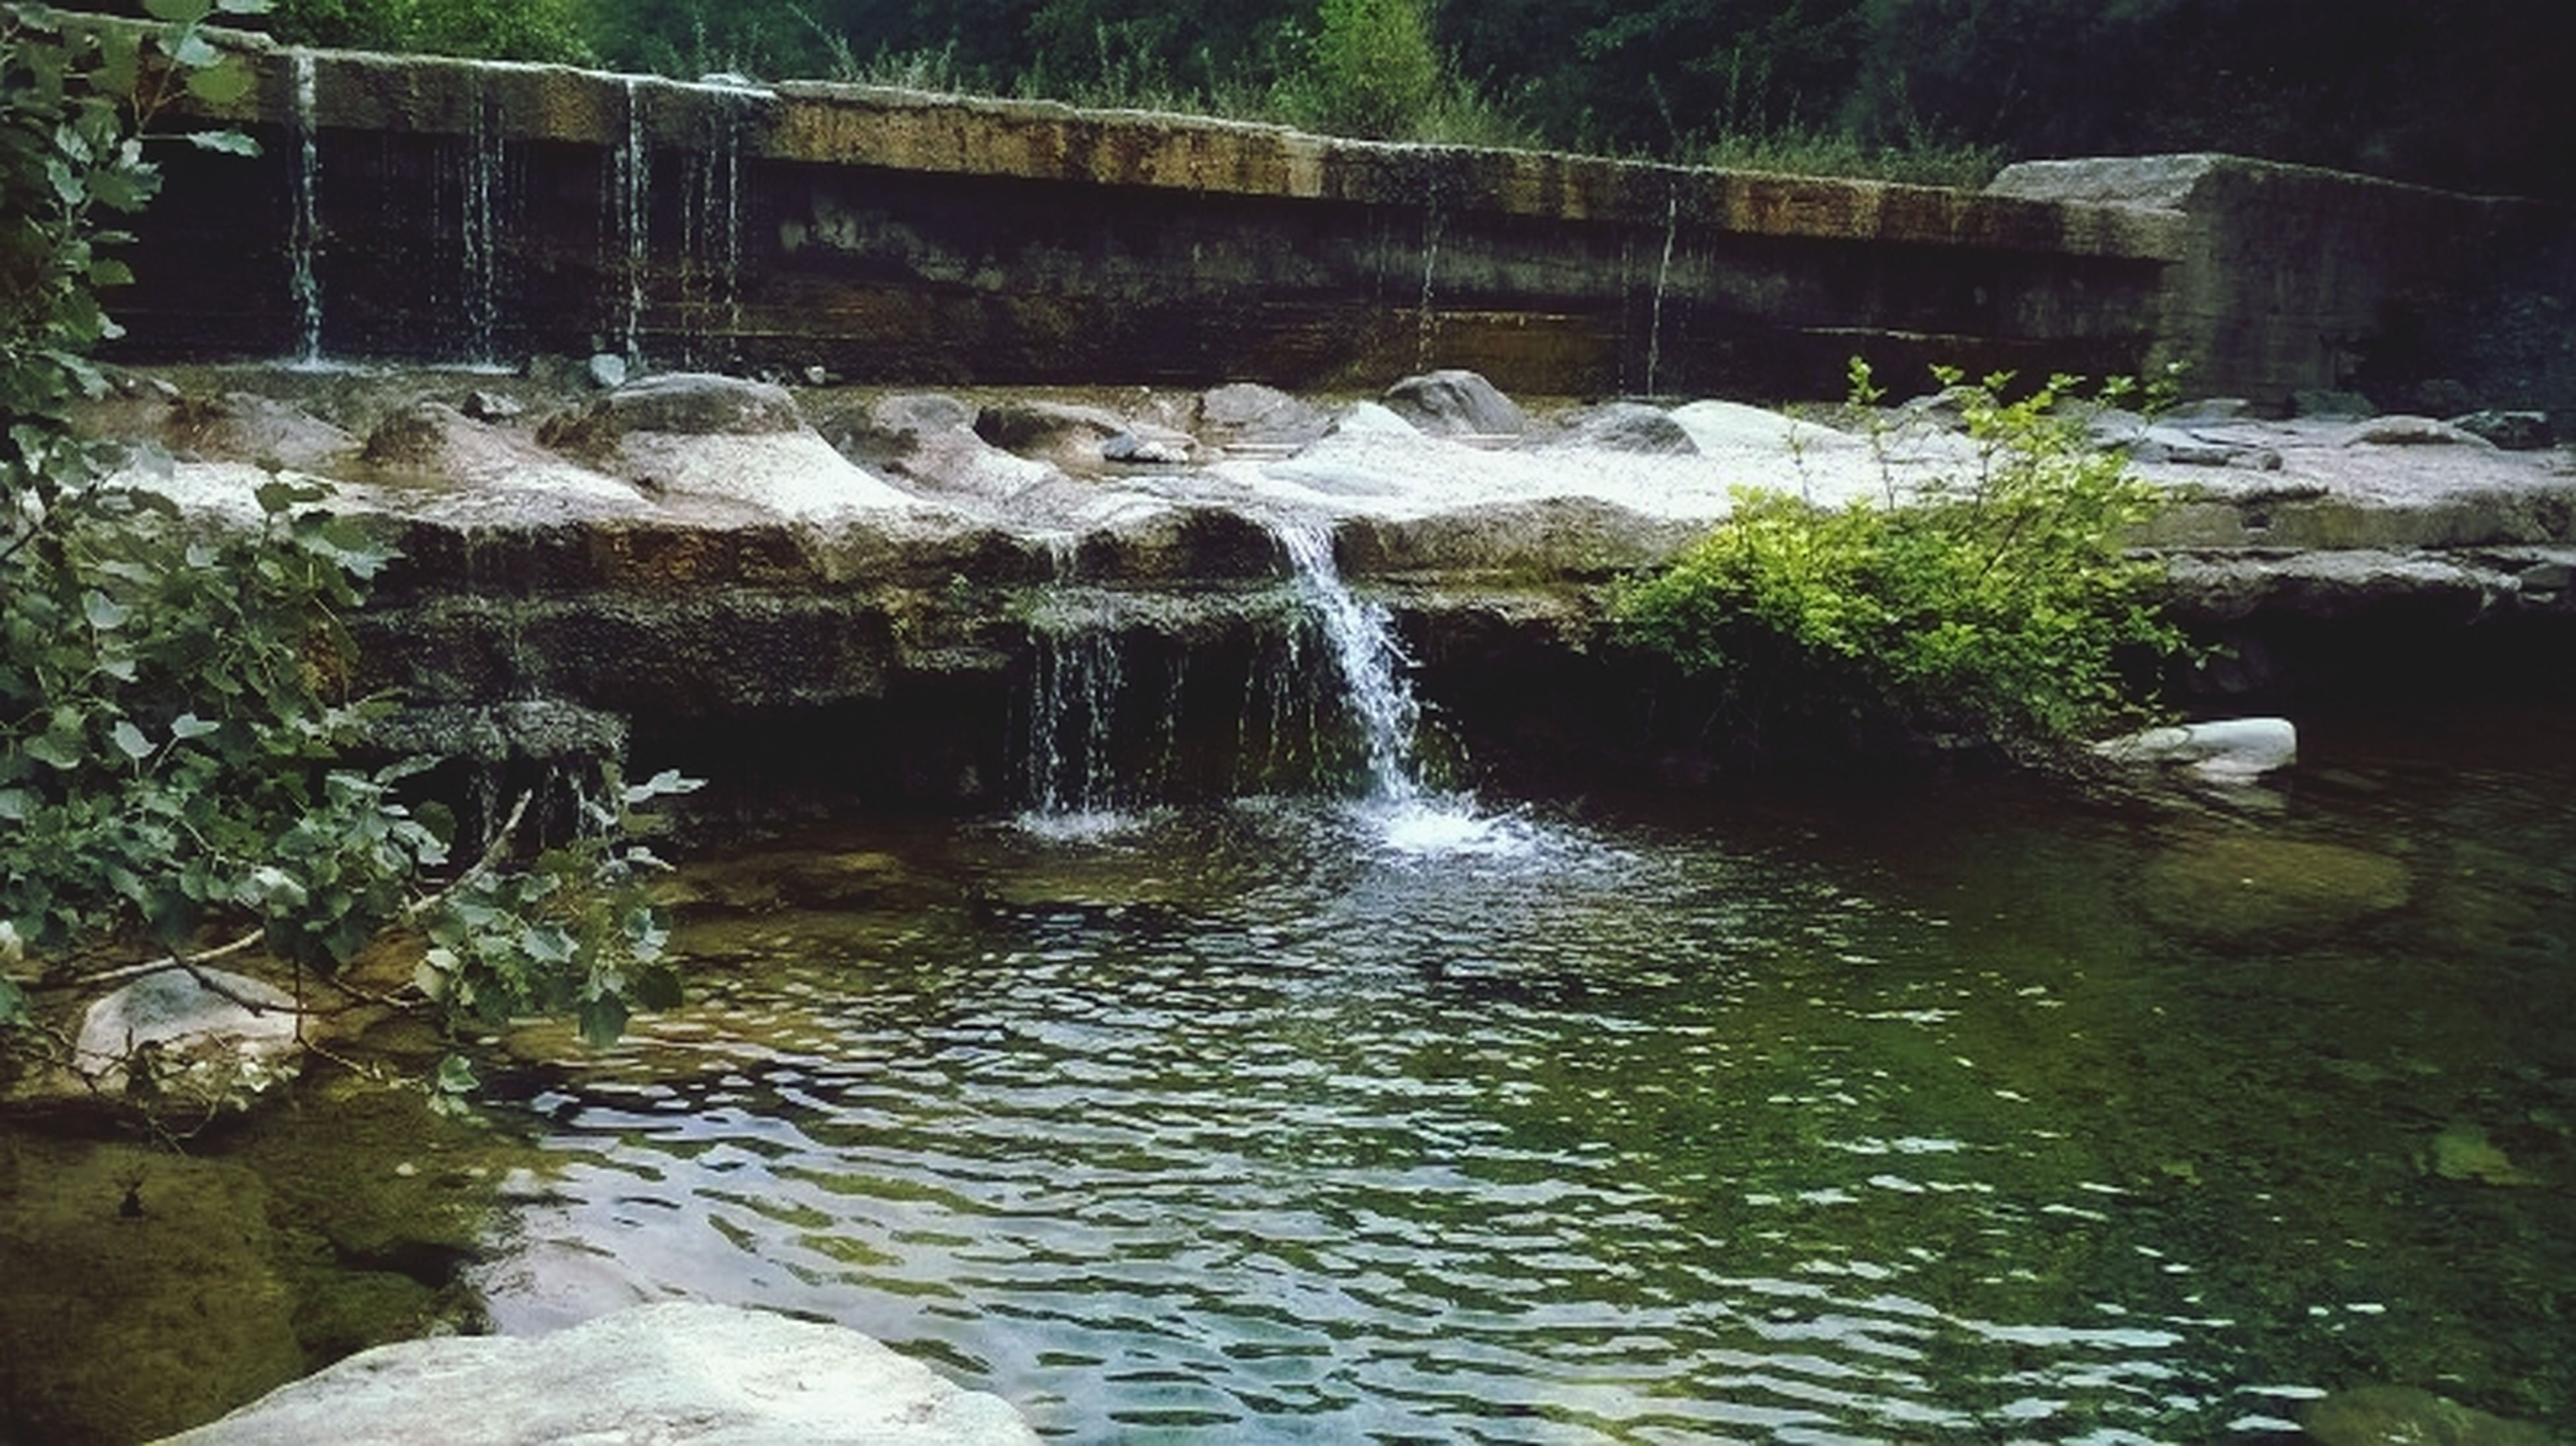 water, rock - object, flowing water, stream, waterfront, flowing, nature, beauty in nature, river, motion, scenics, waterfall, forest, tranquility, tranquil scene, rock, reflection, no people, long exposure, outdoors